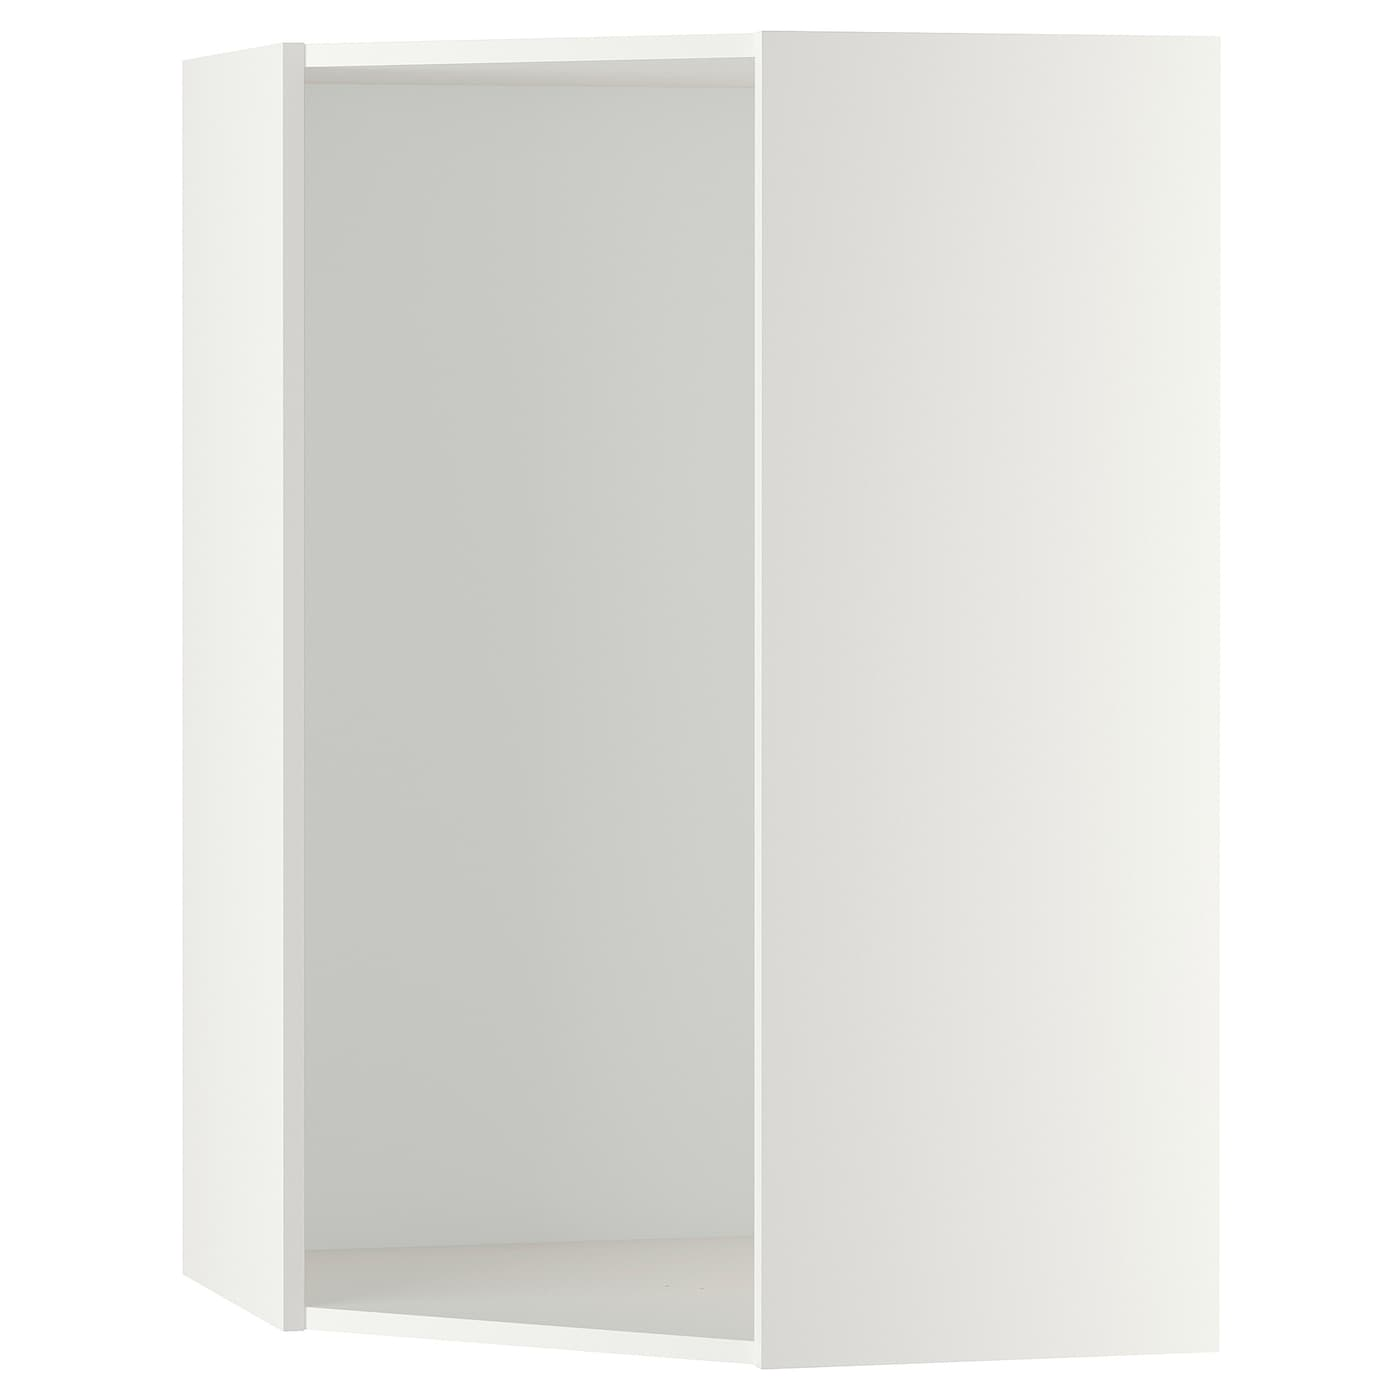 IKEA METOD corner wall cabinet frame Sturdy frame construction, 18 mm thick.